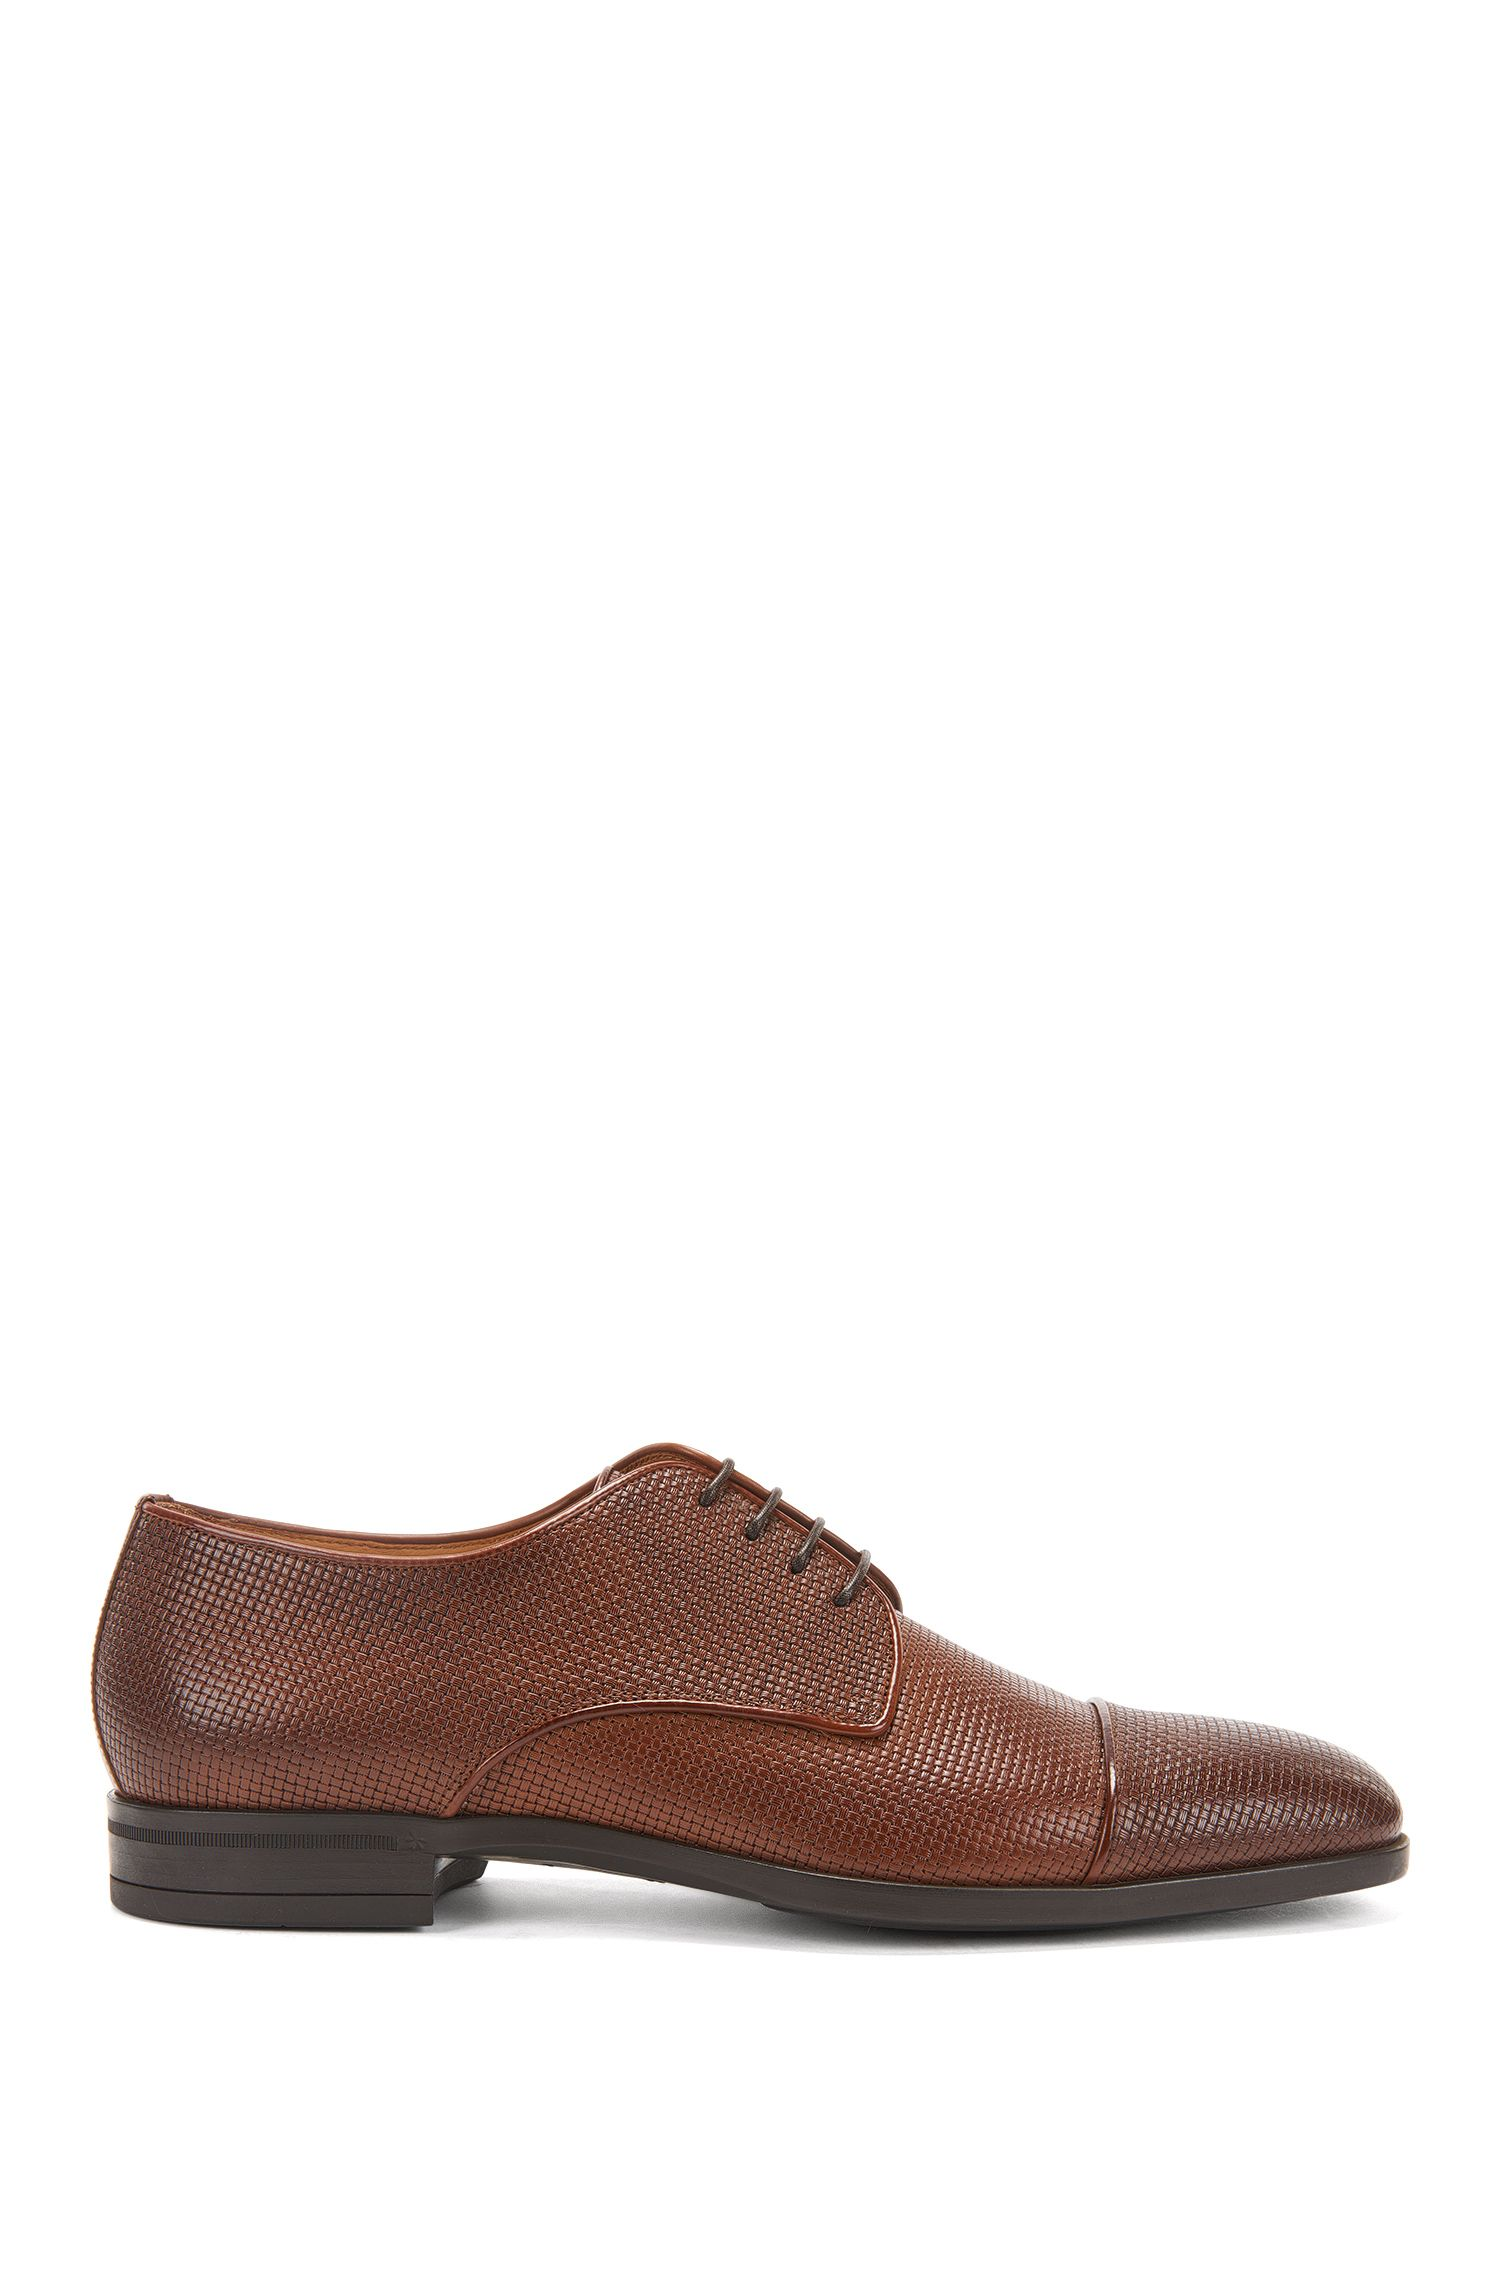 Mens Kensington_derb_buwo Derbys BOSS